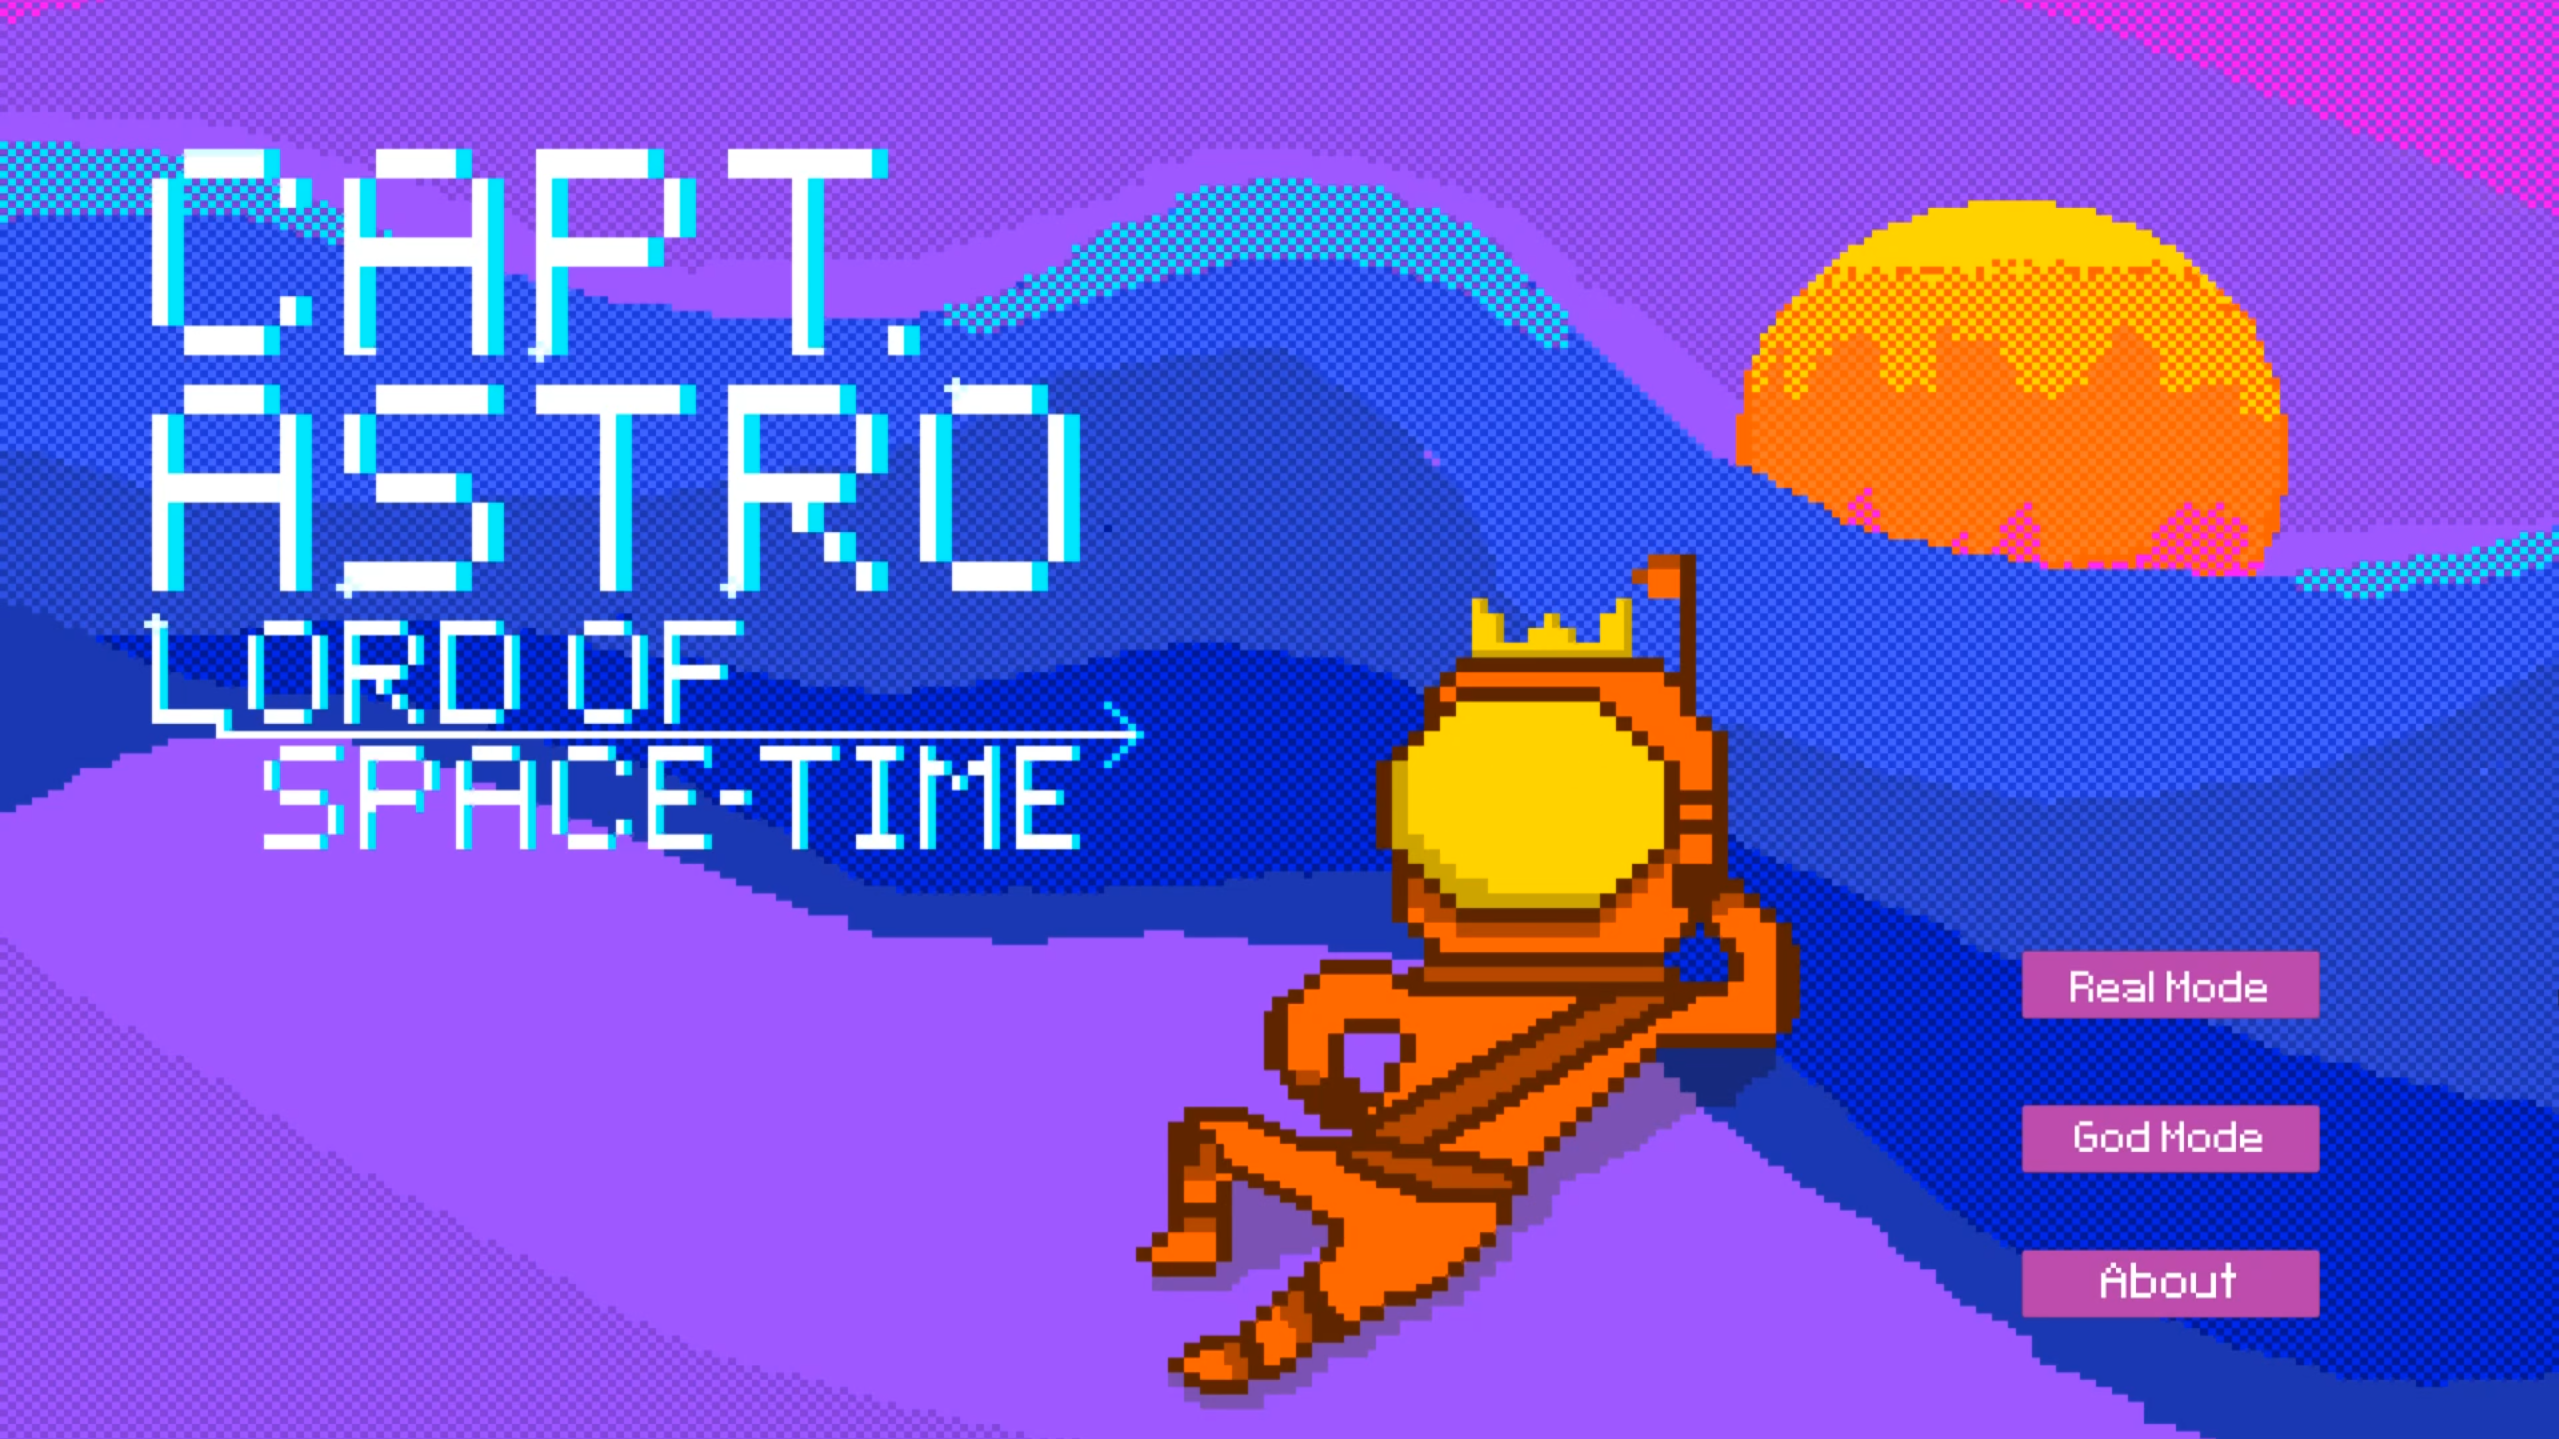 Captain Astro: Lord of Space-Time